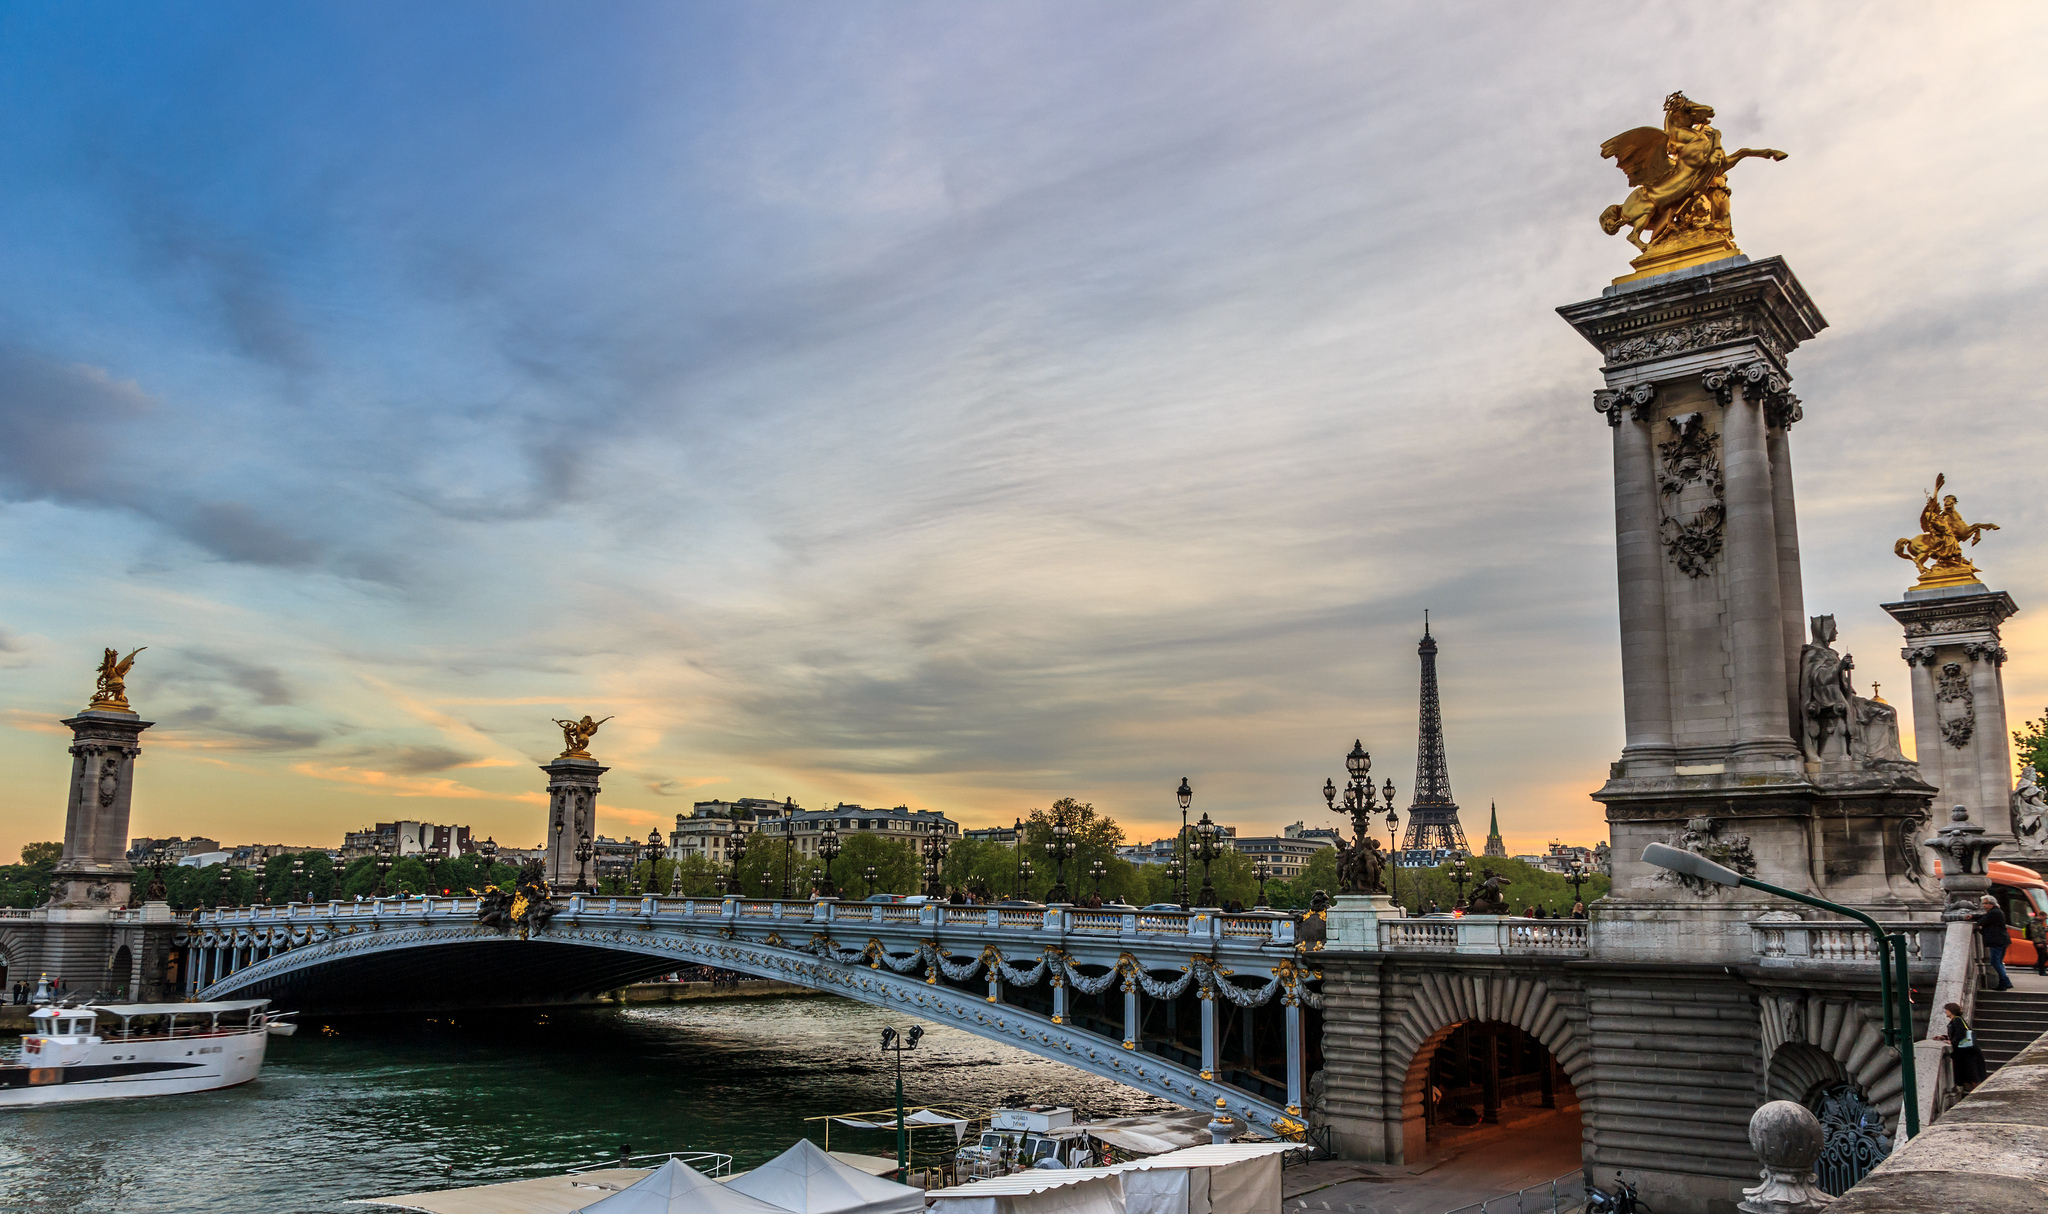 pont alexandre iii bridge in paris thousand wonders. Black Bedroom Furniture Sets. Home Design Ideas